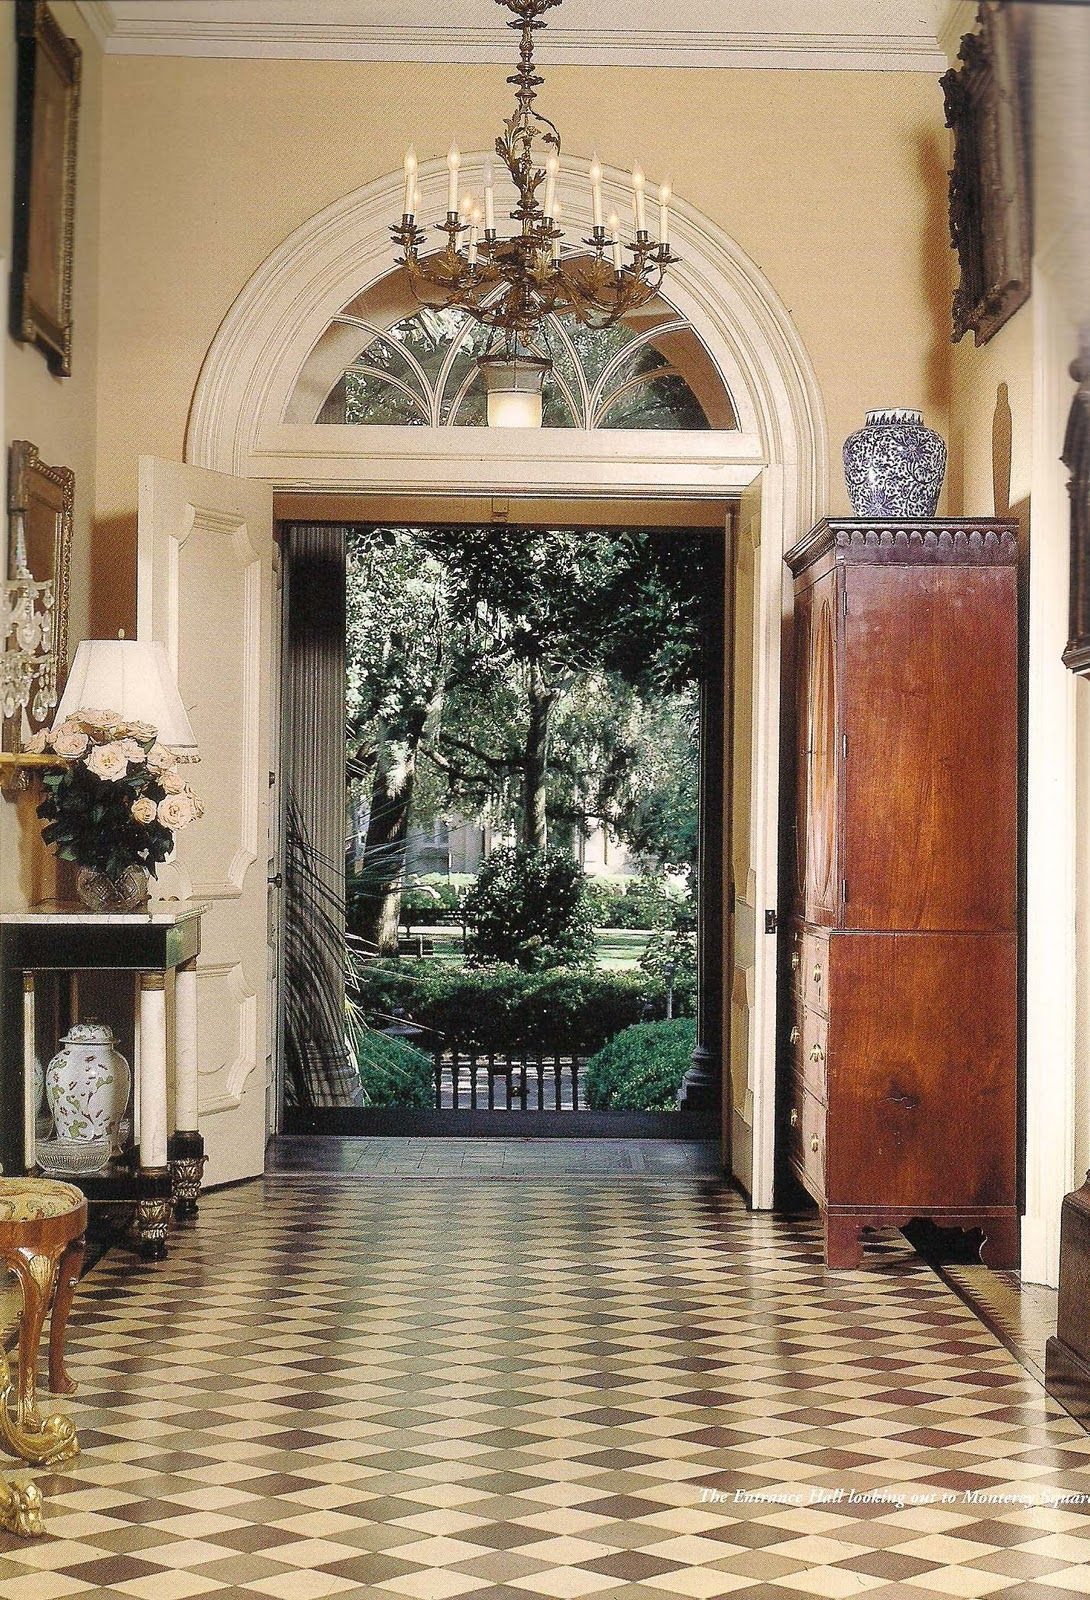 Mercer house central hallway savannah savannahgeorgia - Georgia furniture interiors savannah ga ...